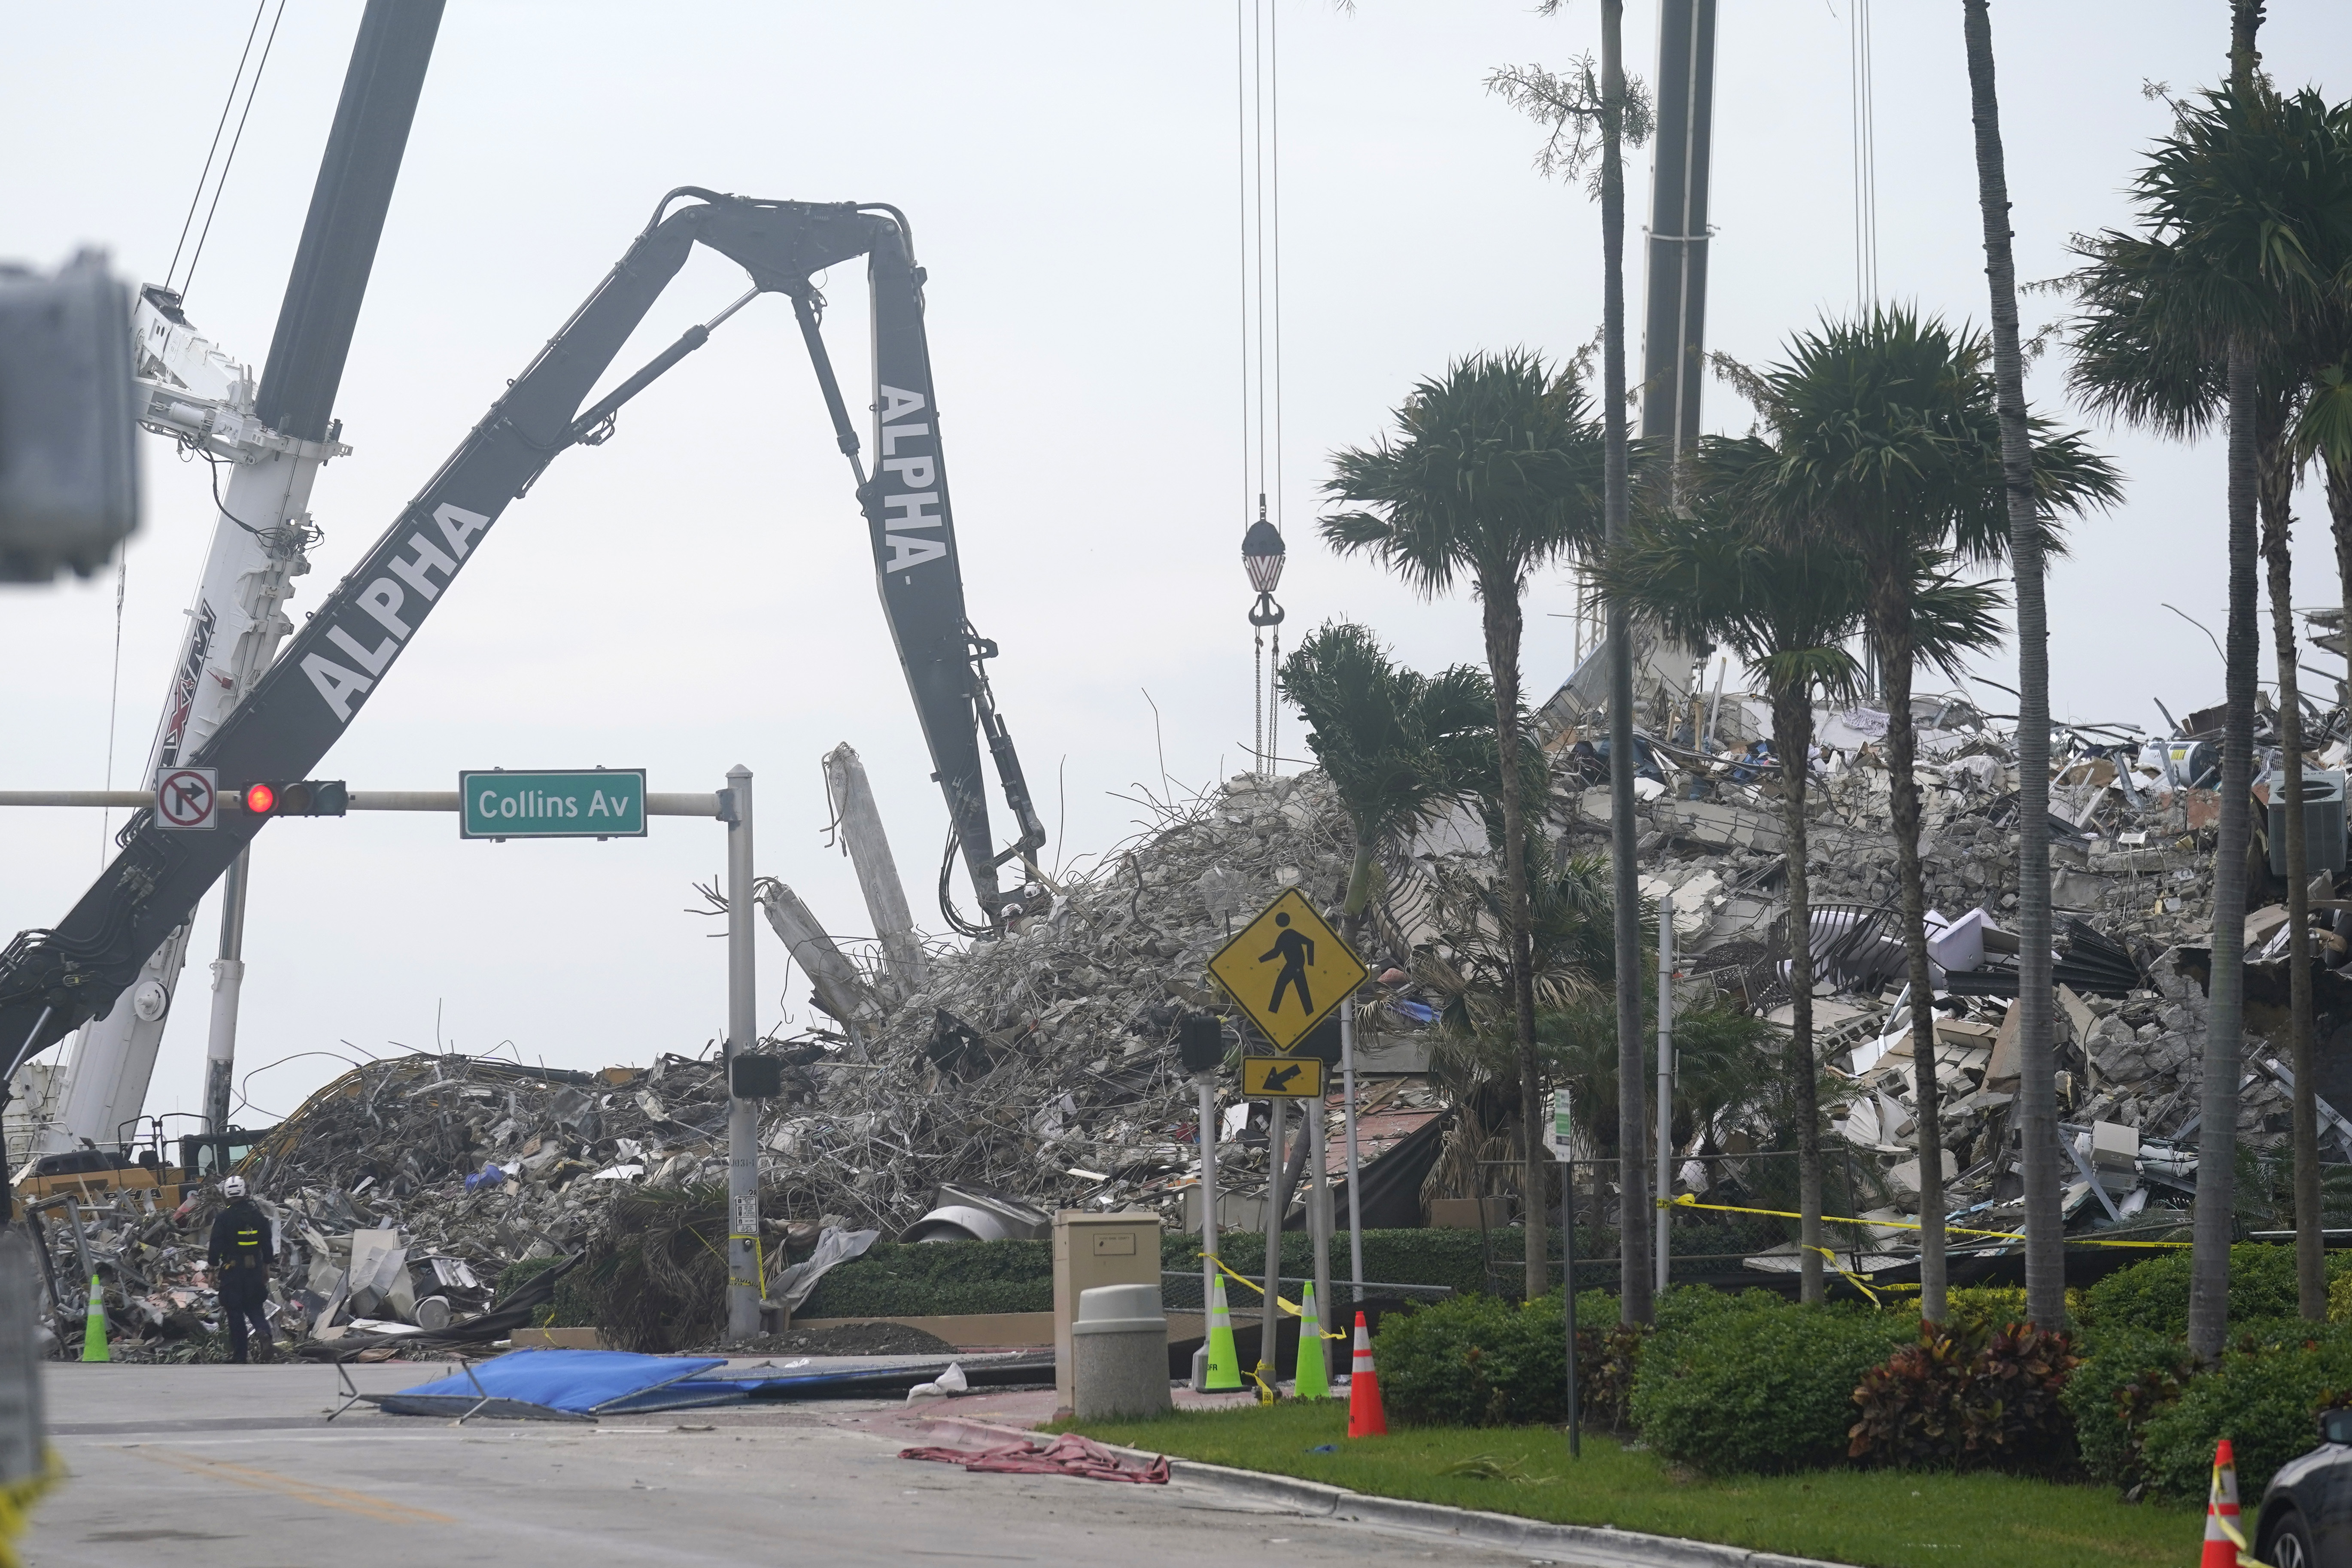 Rescue crews work in the rubble of the collapsed Champlain Towers South condominium building, Tuesday, July 6, 2021, in Surfside, Fla.